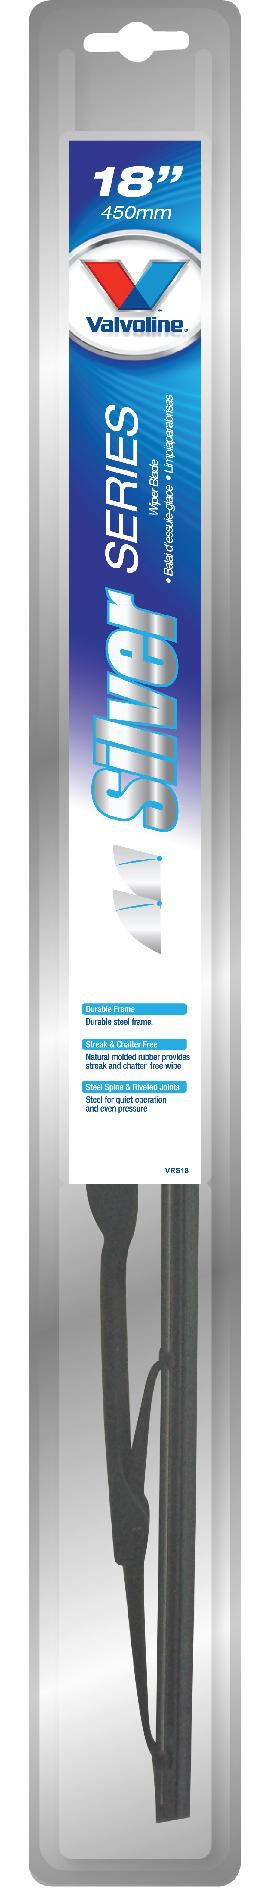 Valvoline  Silver Series Wiper Blade, 18 IN